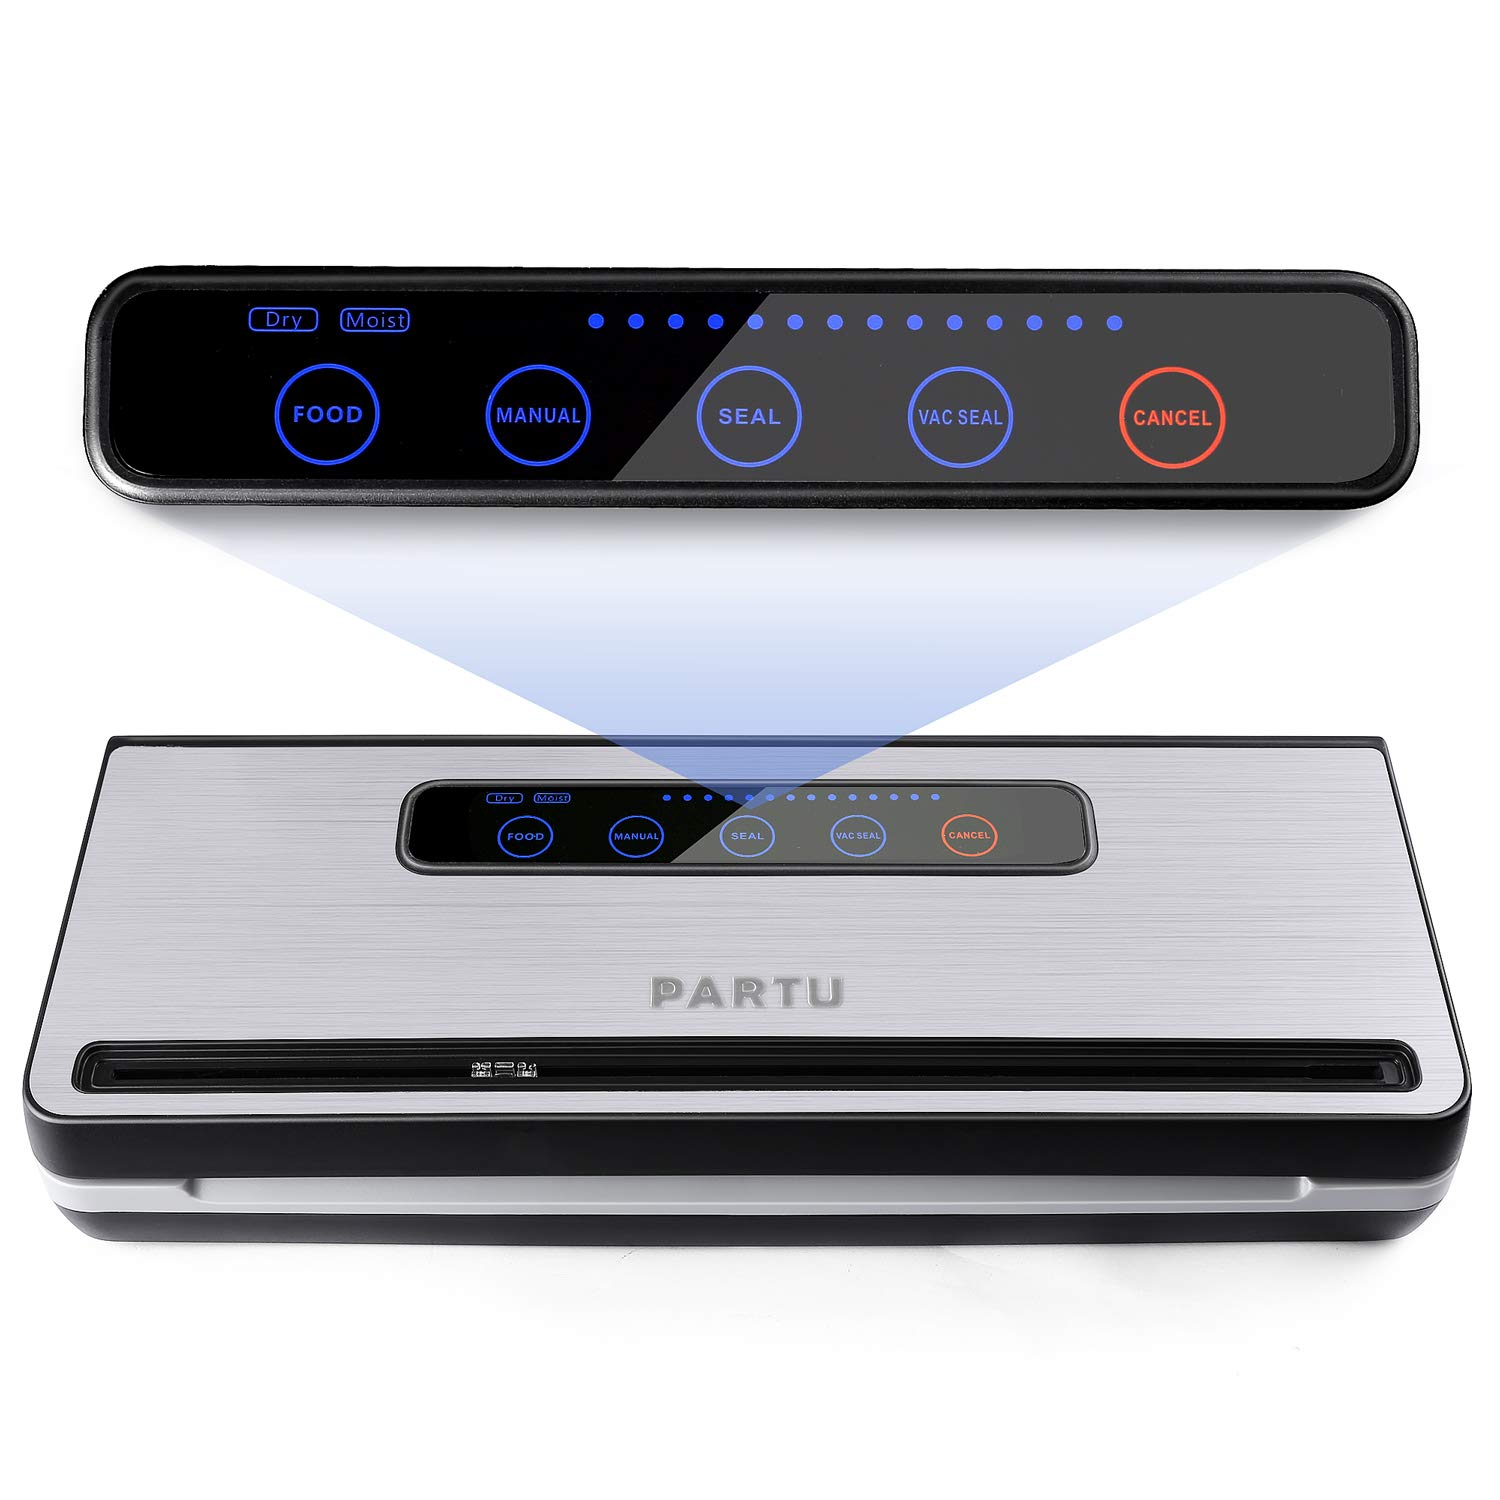 PARTU Vacuum Sealer Machine for Keeping Fresh on Summer Dry Moist Mode Include Vacuum Sealer Bag 11 x 118 Applicable to External Suction Pipe Fresh-keeping Tank and Clothes Storage